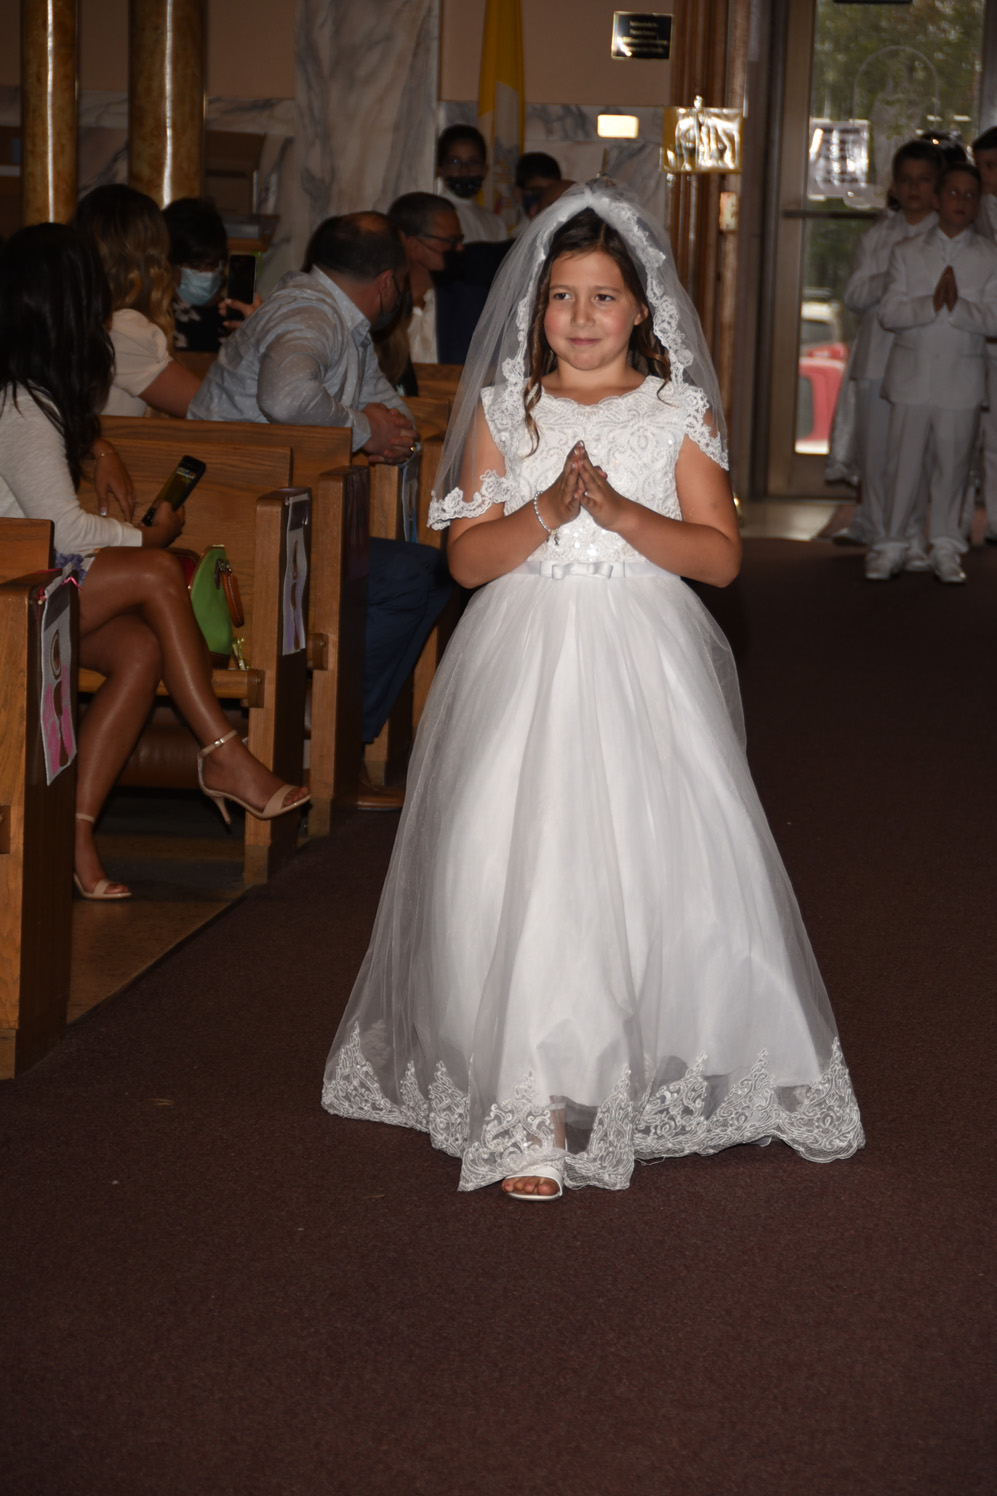 FIRST-COMMUNION-MAY-2-2021-1001001163